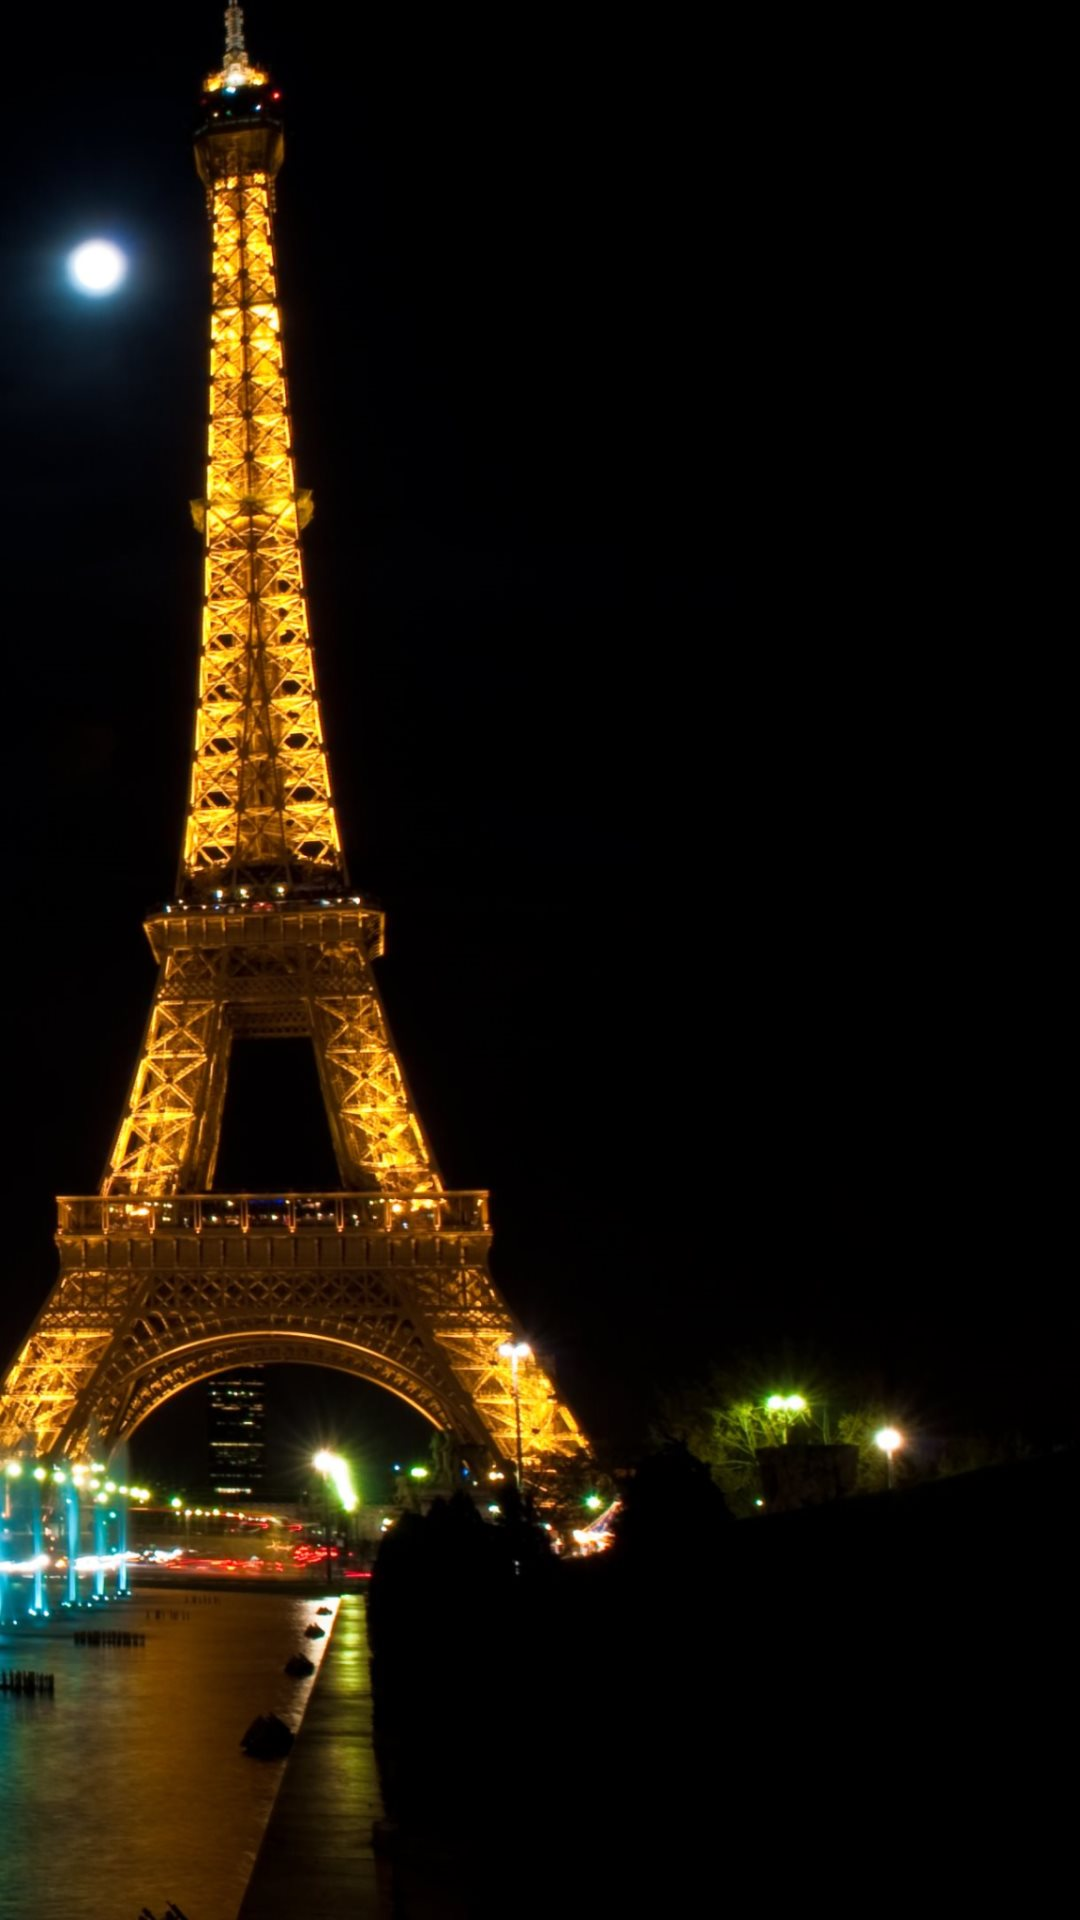 paris at night tour eiffel hd wallpapers 4k macbook and